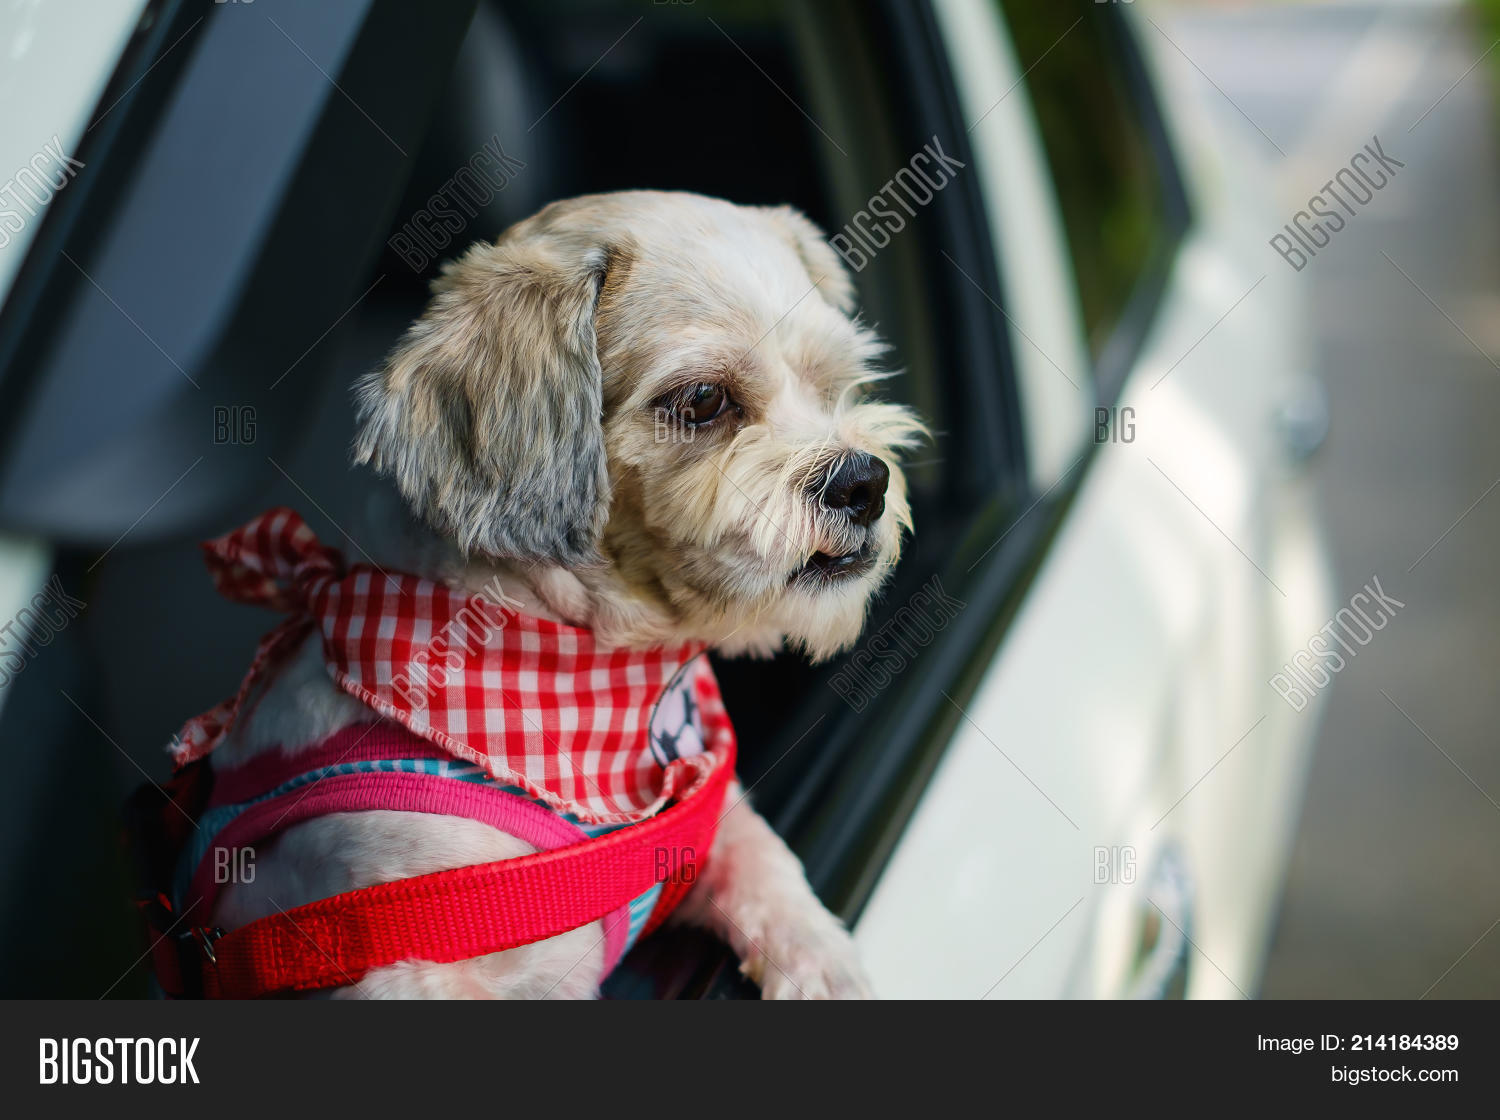 White Short Hair Shih Image Photo Free Trial Bigstock